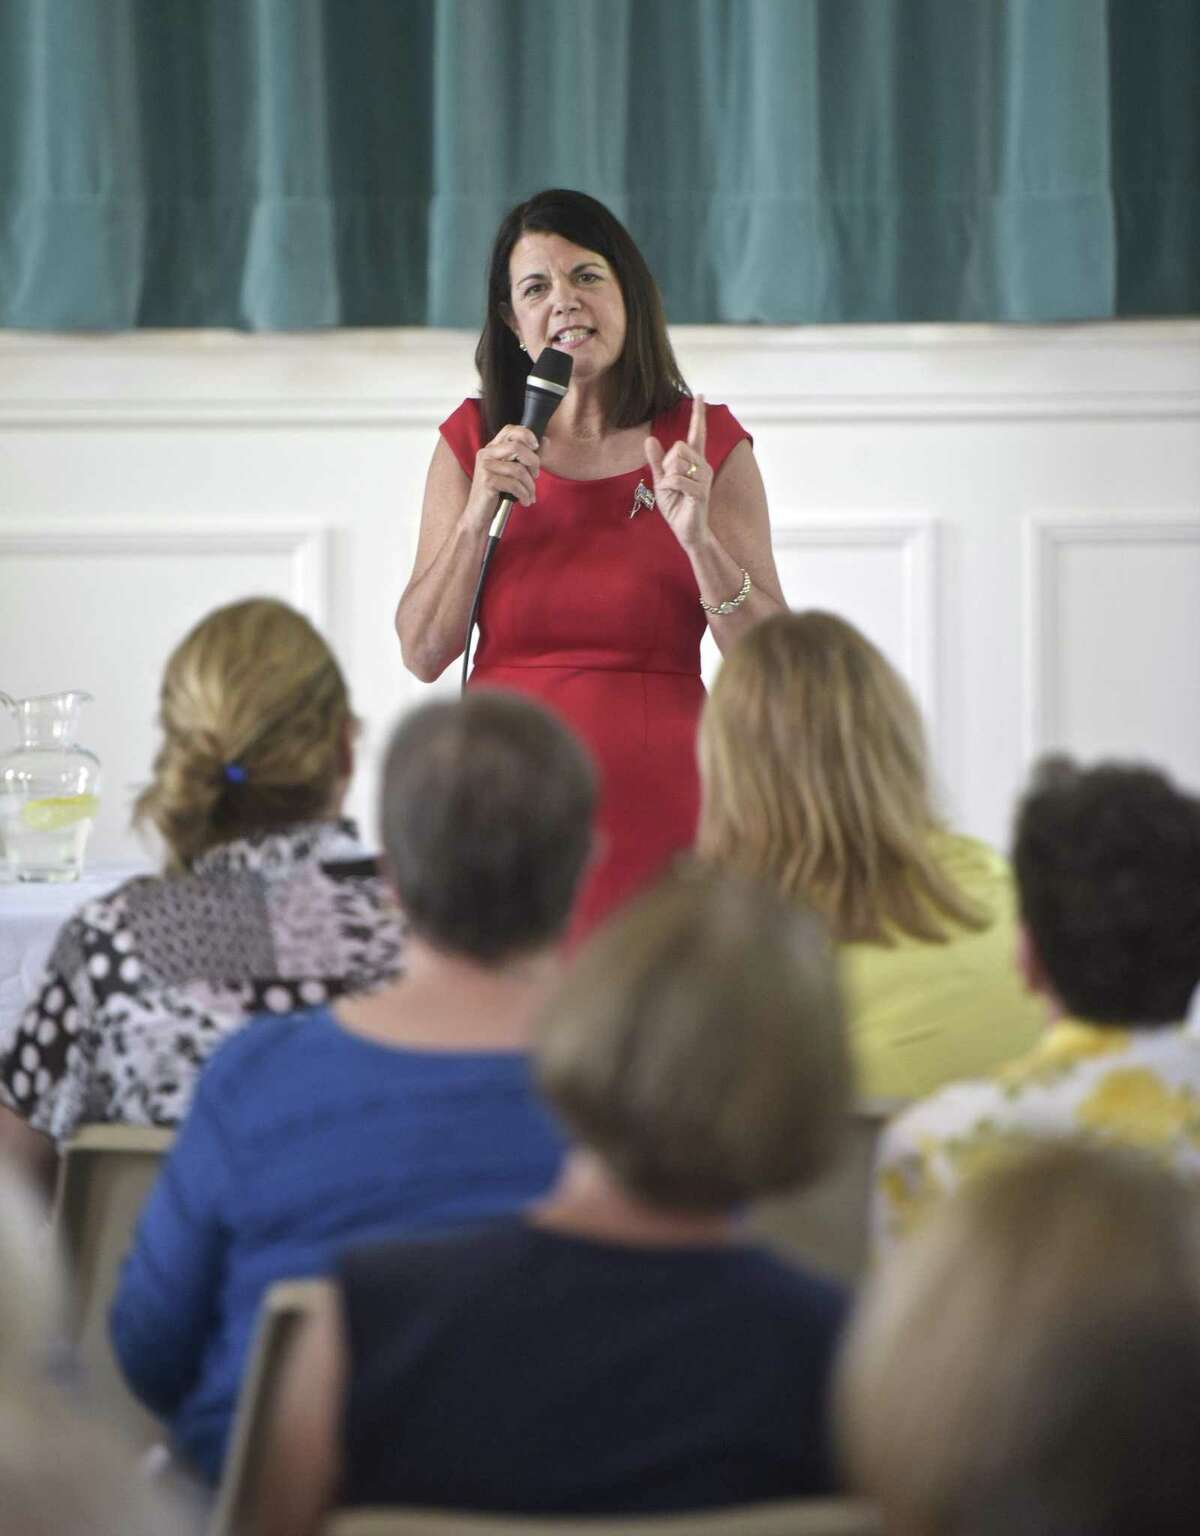 Mary Glassman speaks during the Washington Town Committee forum for candidates in the Connecticut 5th Congressional District, featuring Glassman and Jahana Hayes, Sunday, July 8, 2018, at Bryan Memorial Town Hall, Washington, Conn.